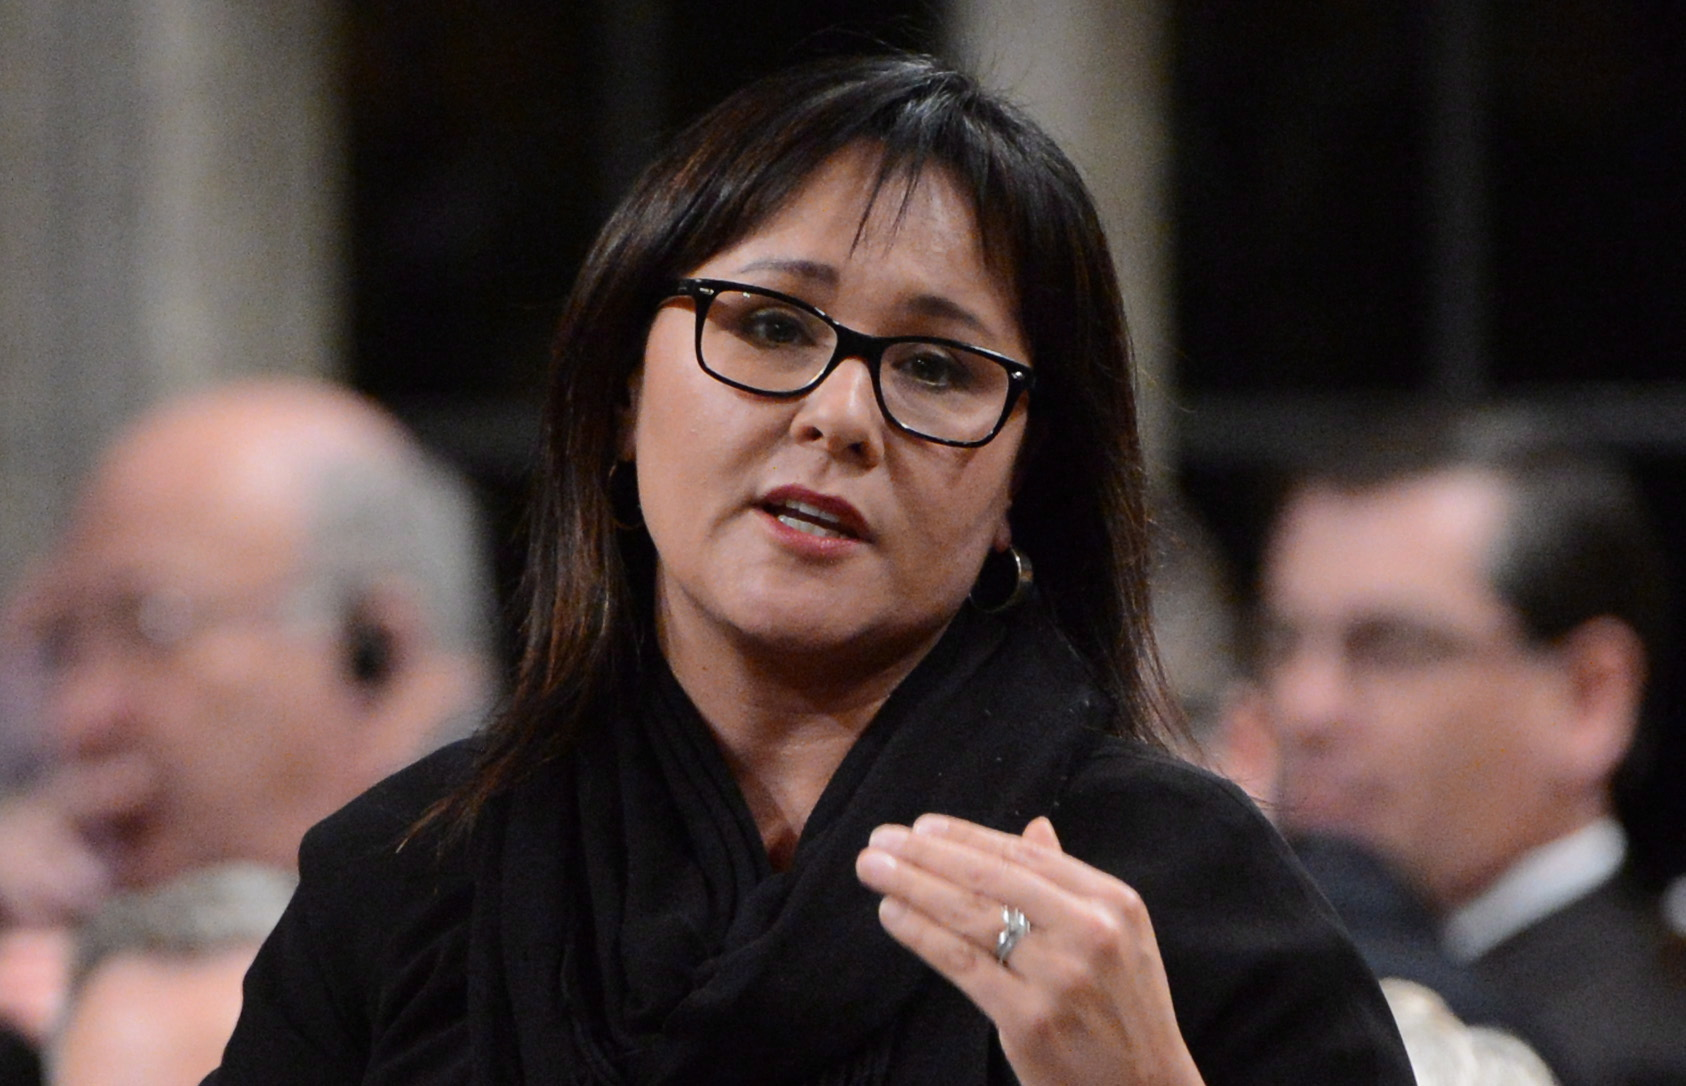 Leona Aglukkaq, the Canadian MP for Nunavut and Minister of Health, has been named the Chair of Arctic Council for Canada's upcoming chairmanship in 2013. Photo: Sean Kilpatrick, The Canadian Press